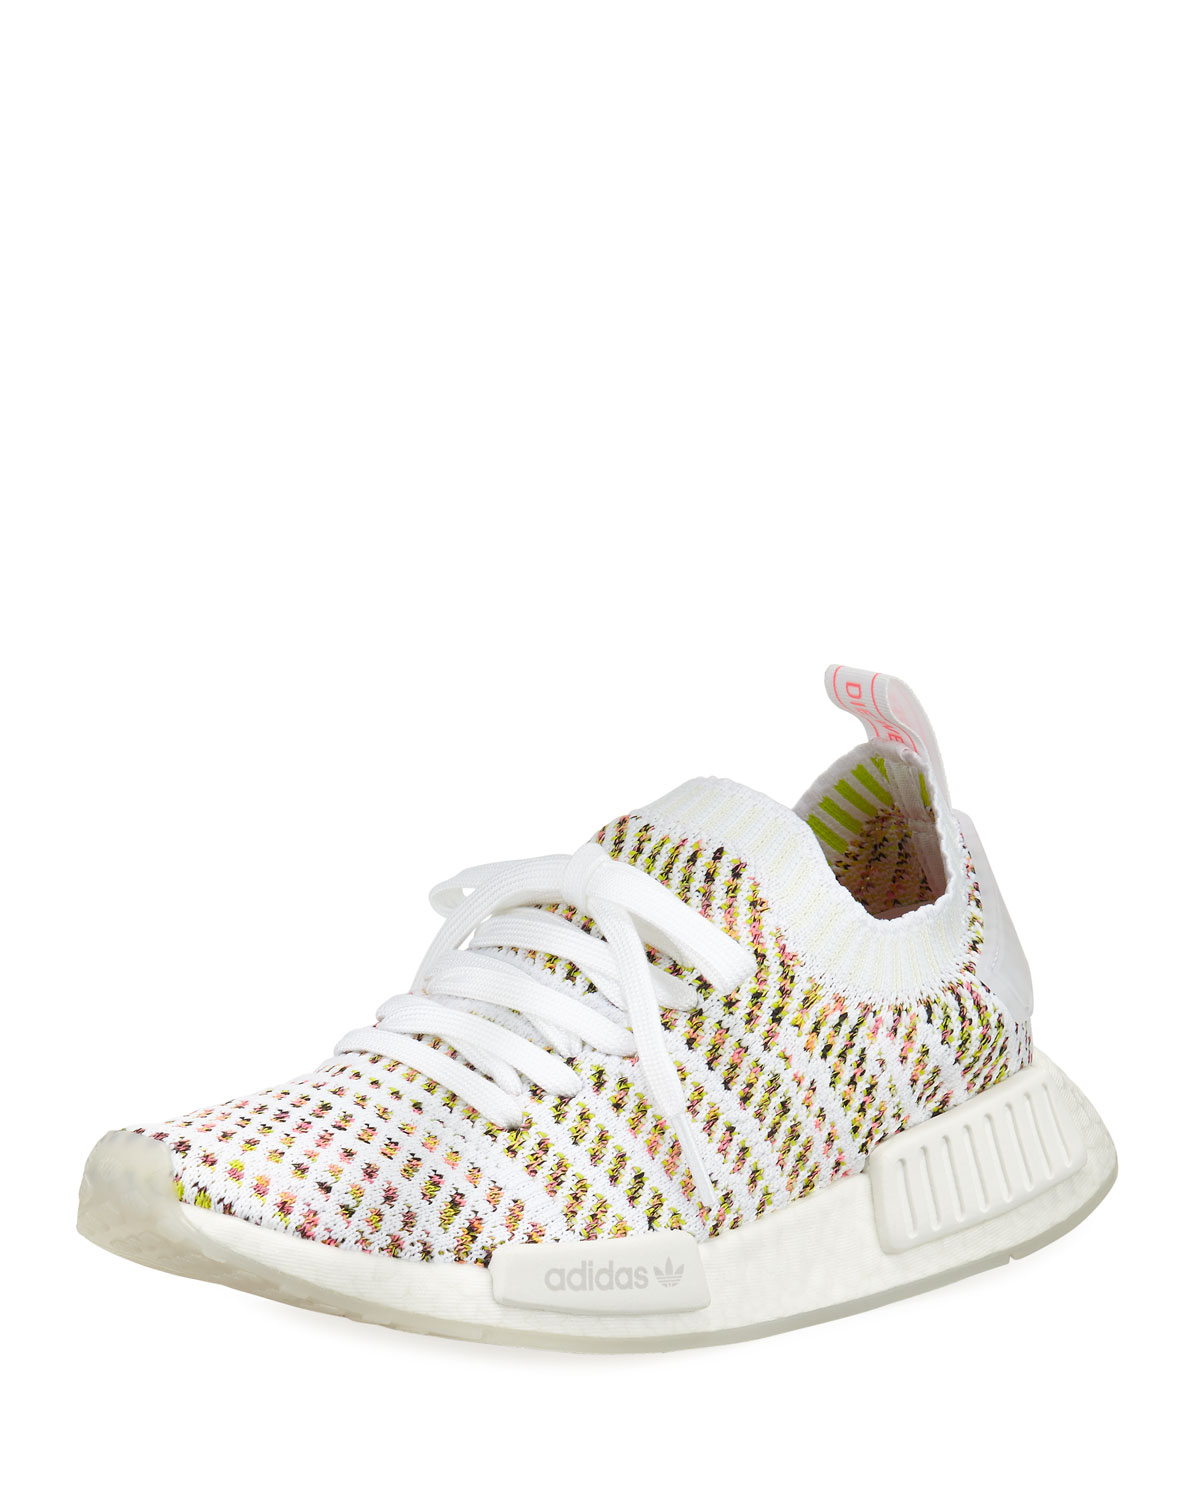 best website efc6c de6fd AdidasNMD R1 Primeknit Sneakers, White Yellow Pink